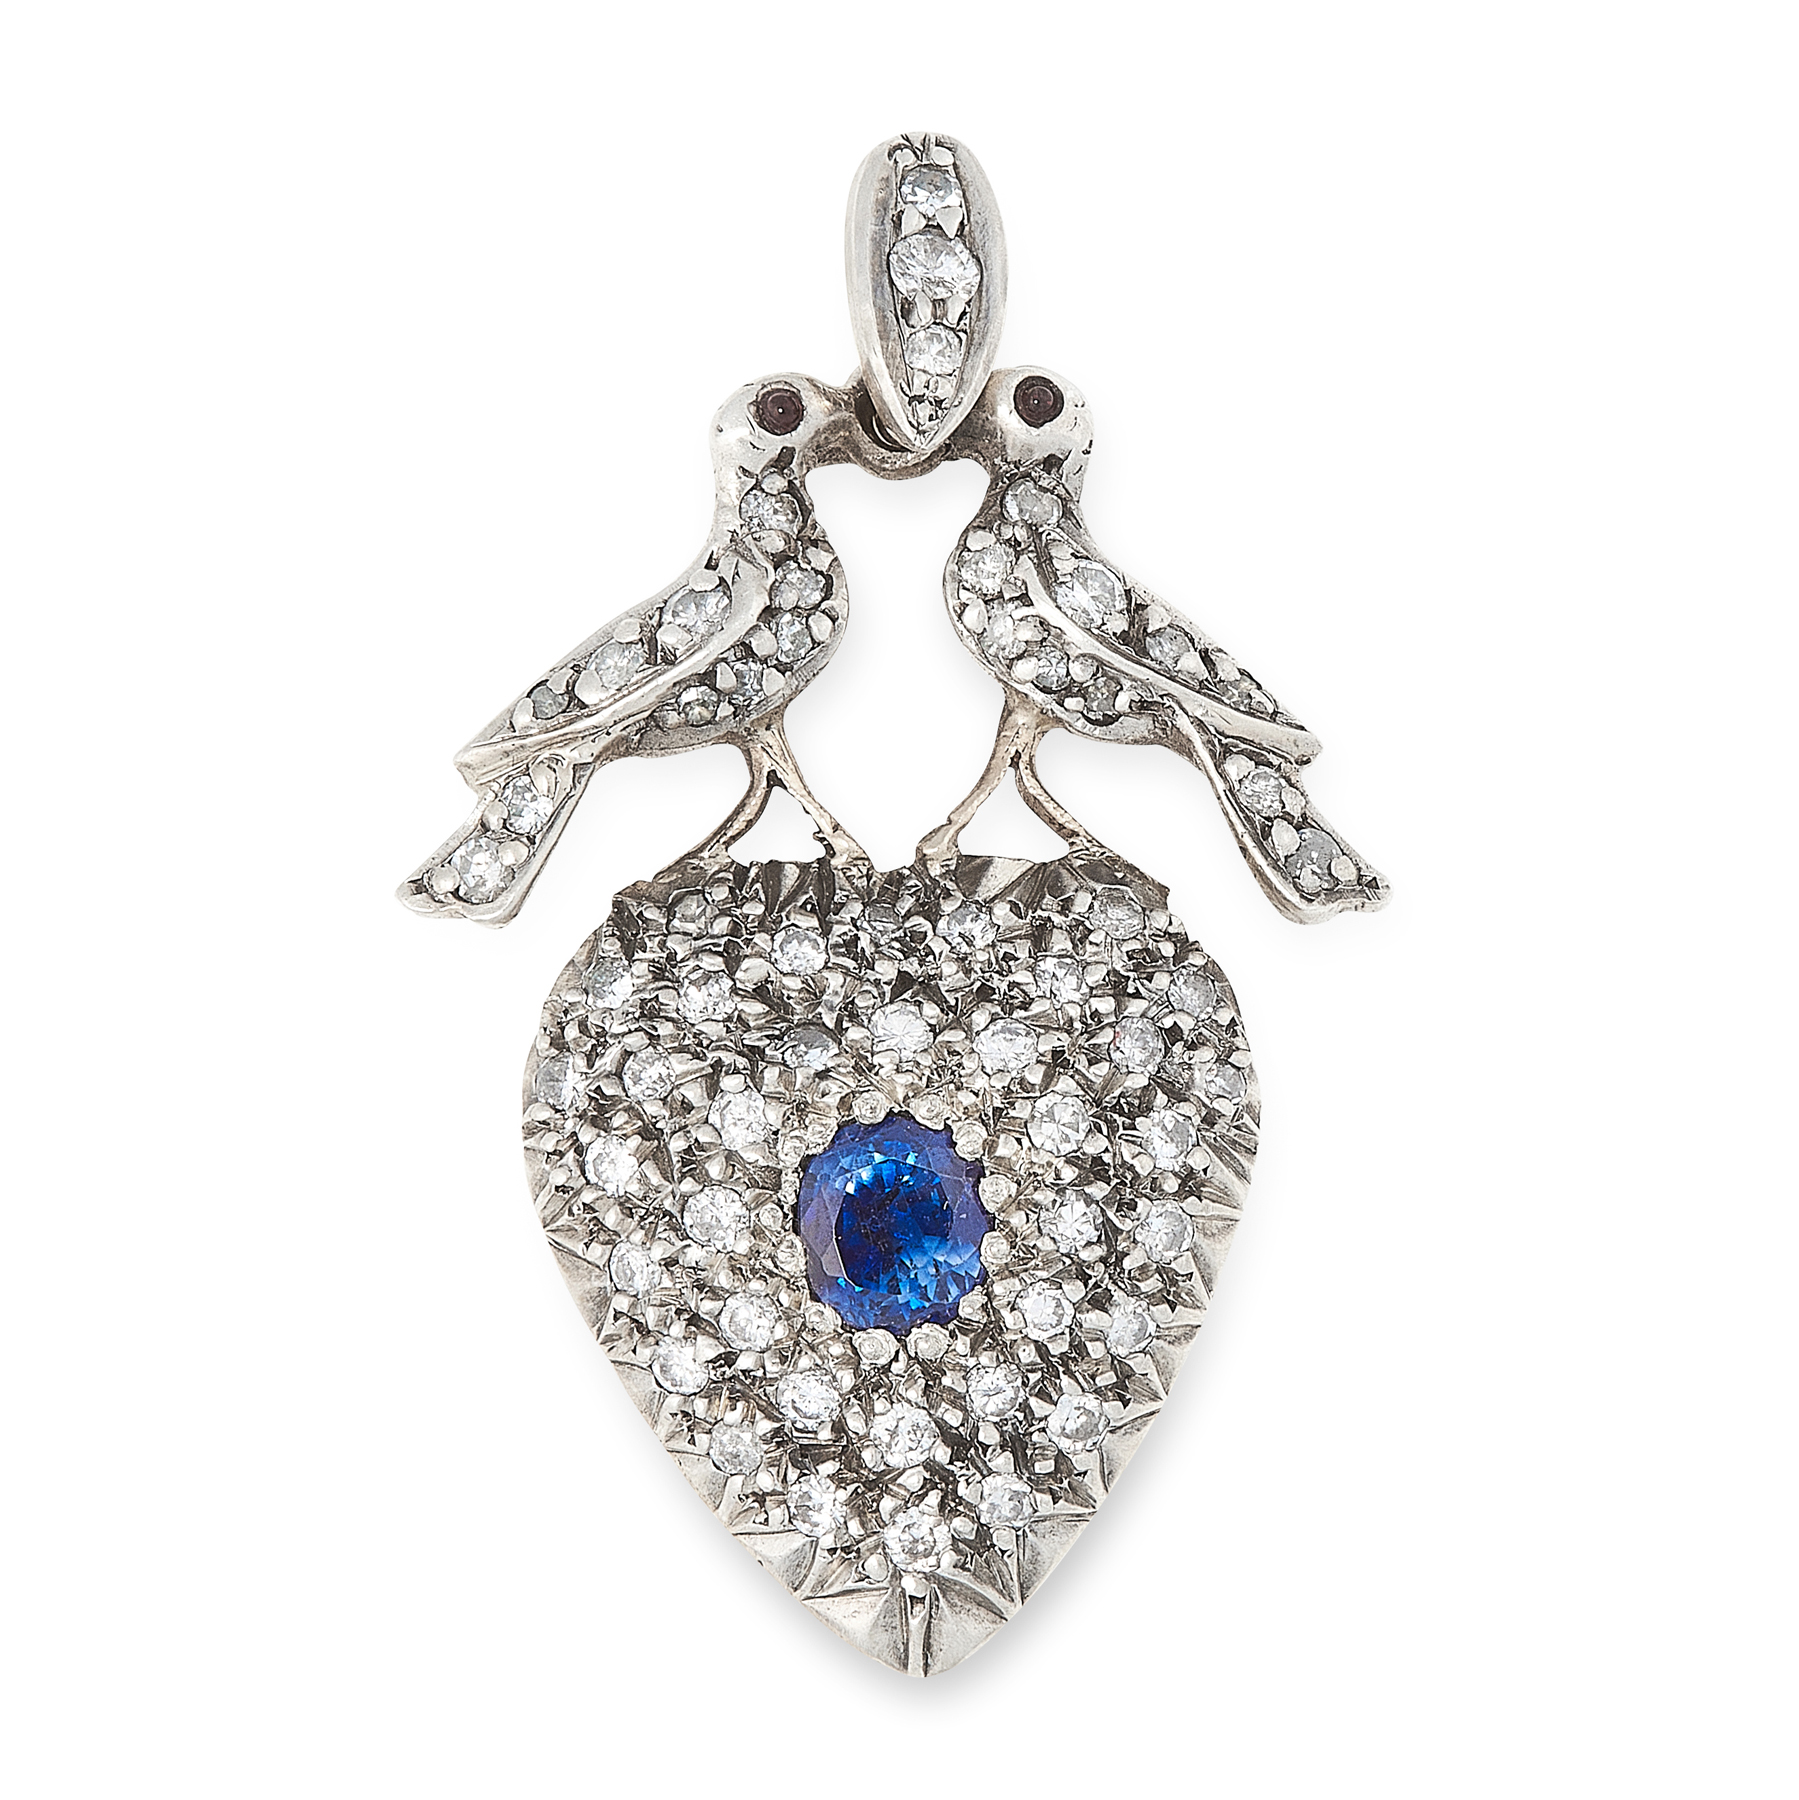 AN ANTIQUE SAPPHIRE AND DIAMOND MOURNING LOCKET PENDANT, 19TH CENTURY in yellow gold and silver,